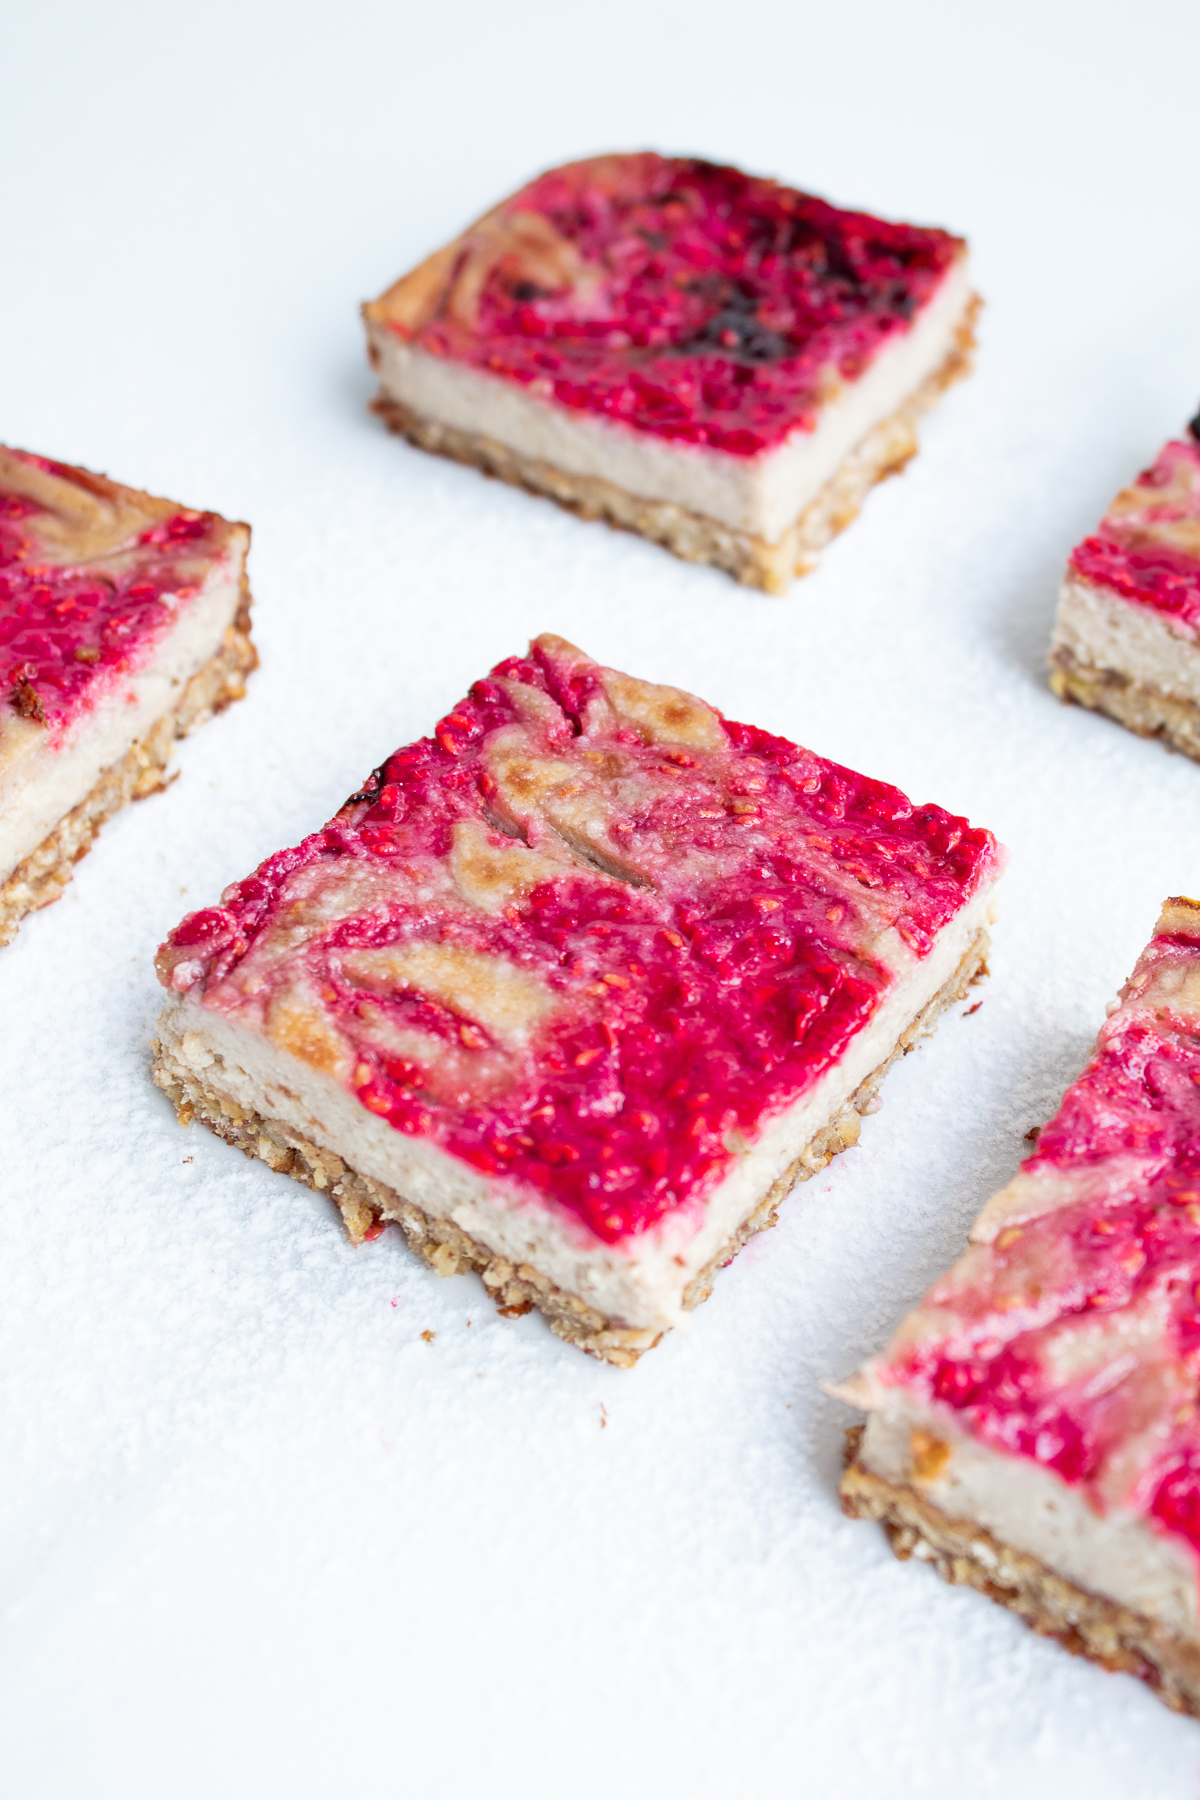 Raspberry Swirl Cheesecake Bars - Naturally-Sweetened